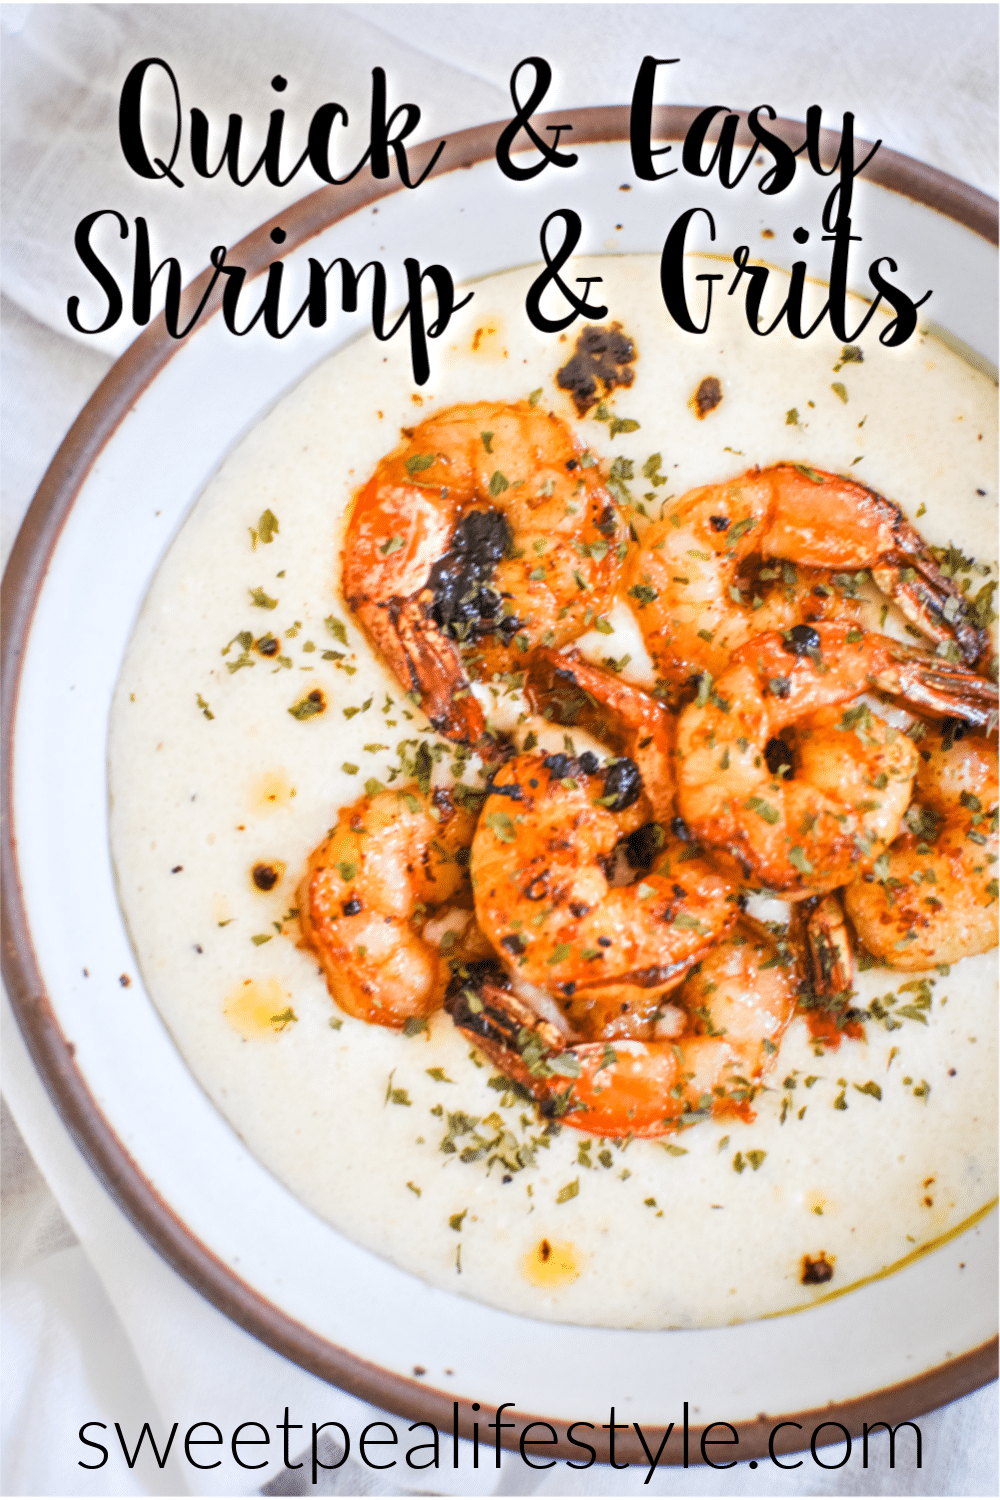 Quick and Easy Shrimp and Grits Recipe from Sweetpea Lifestyle